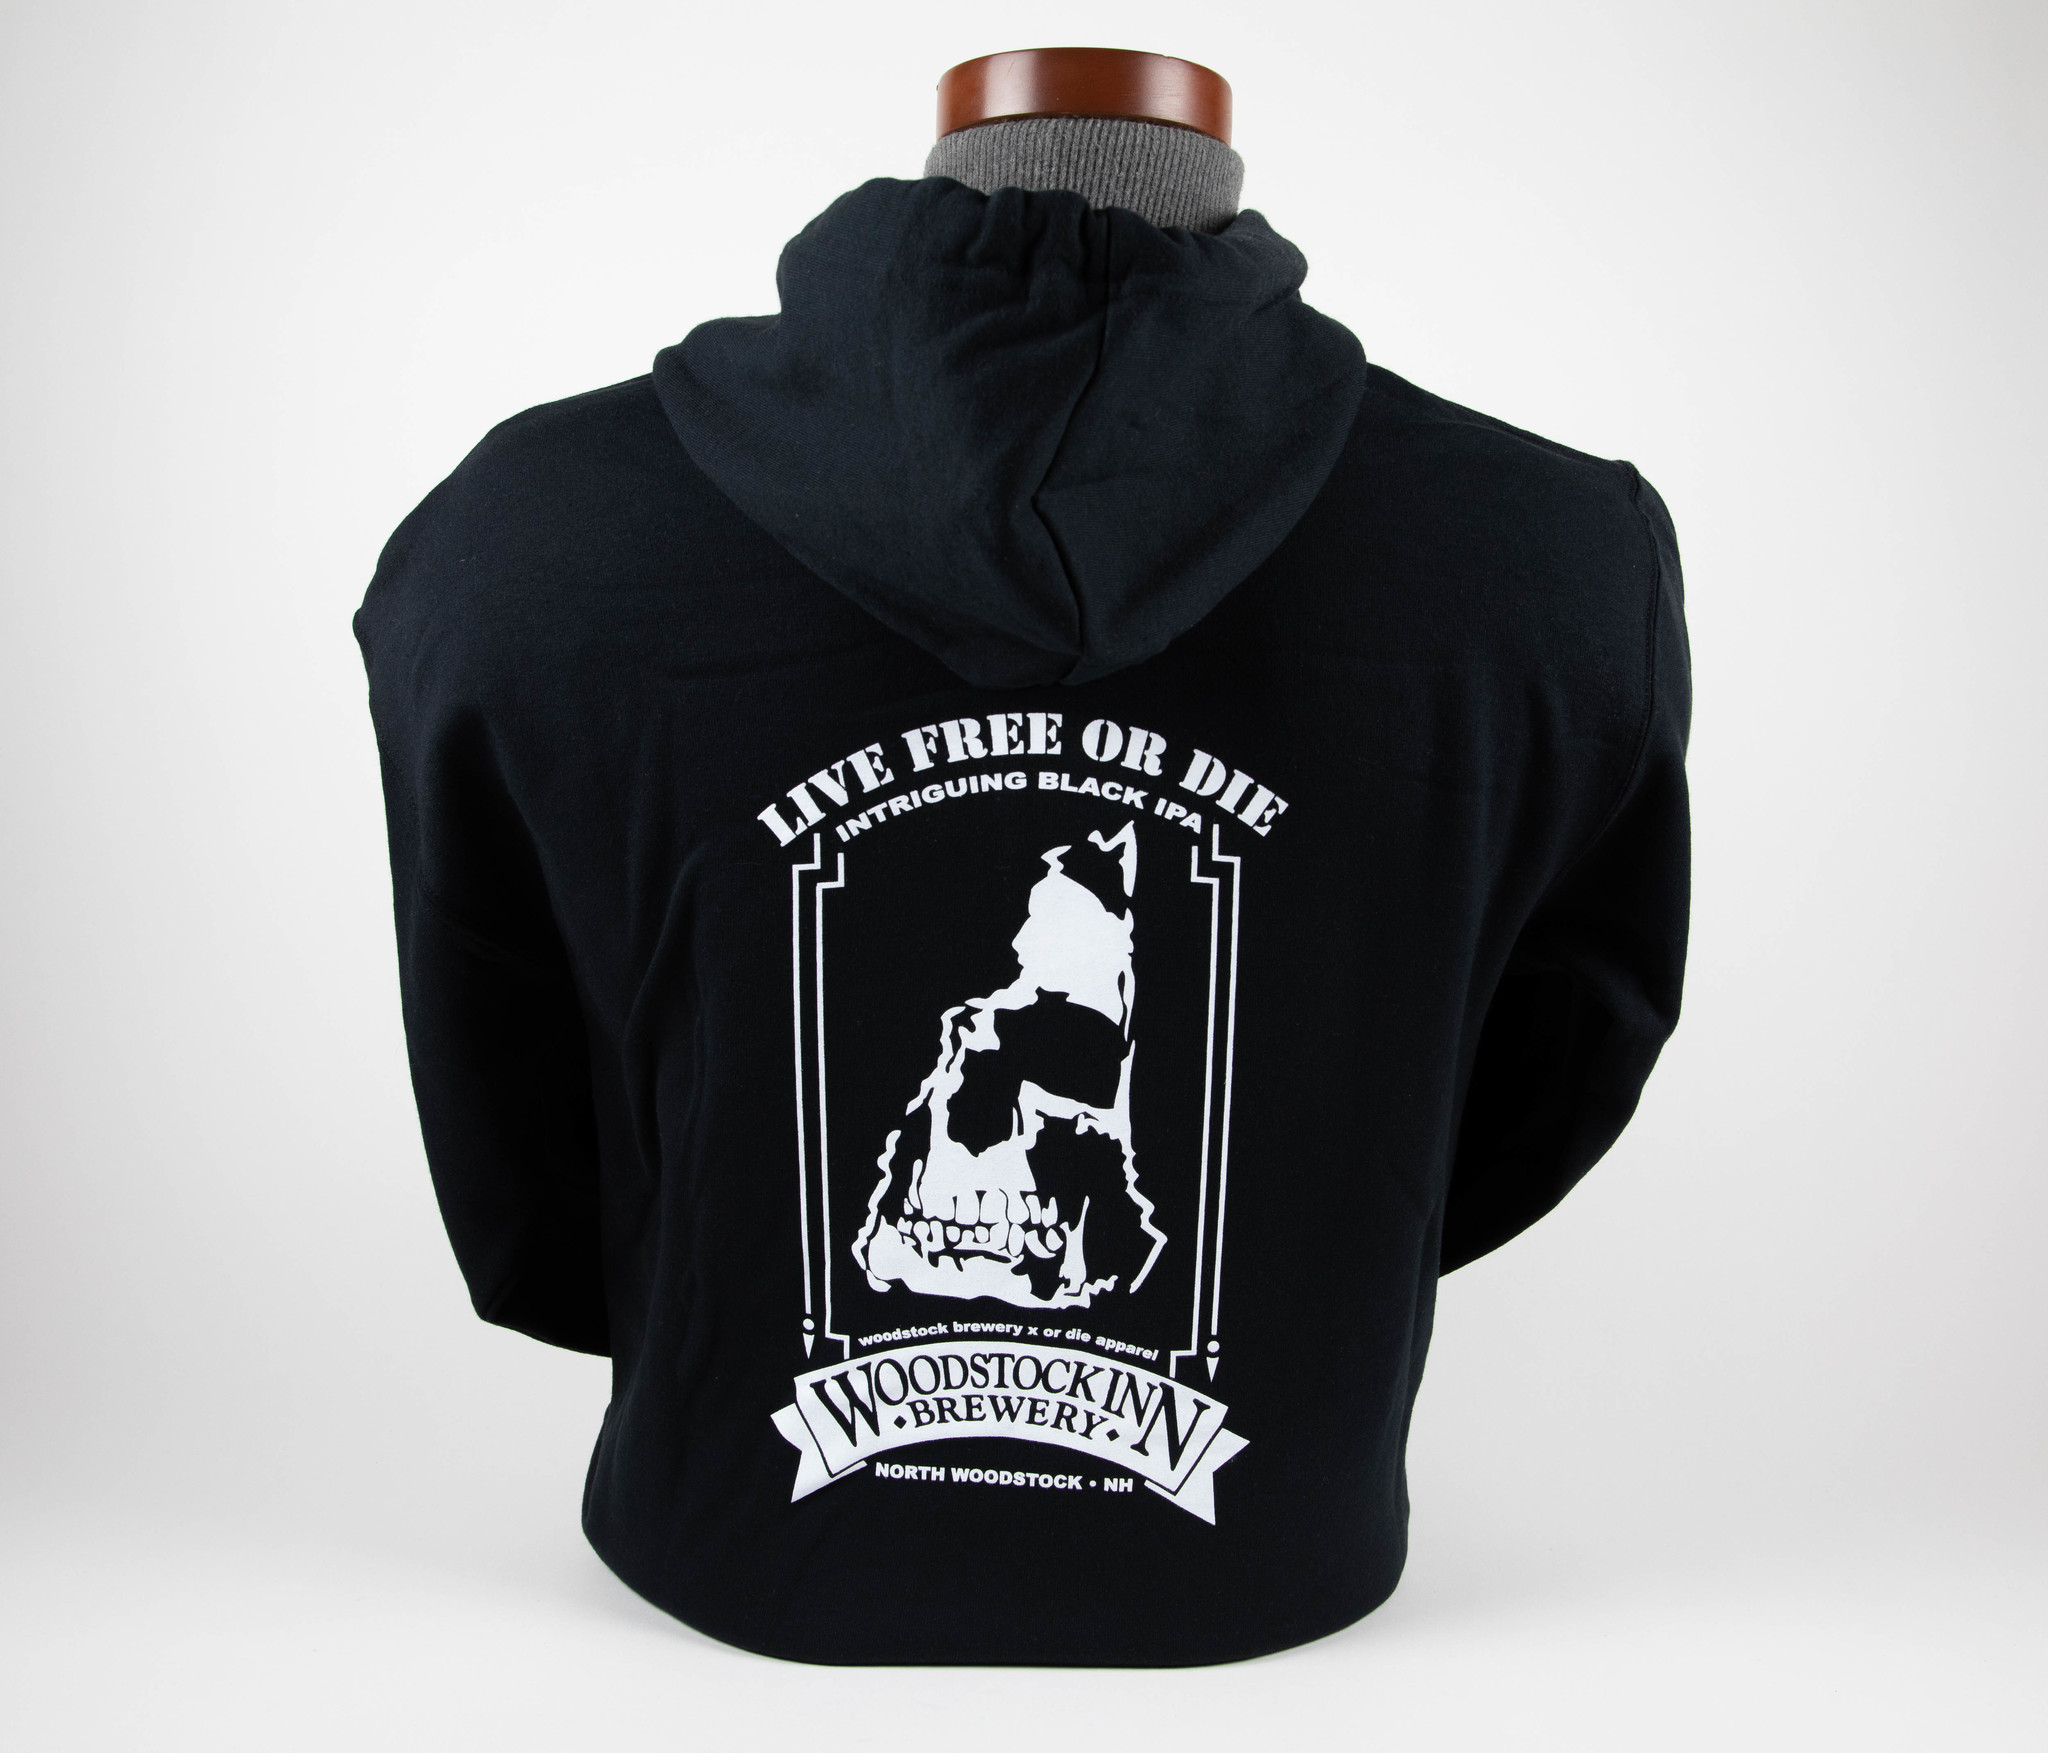 Live Free or Die zip sweatshirt